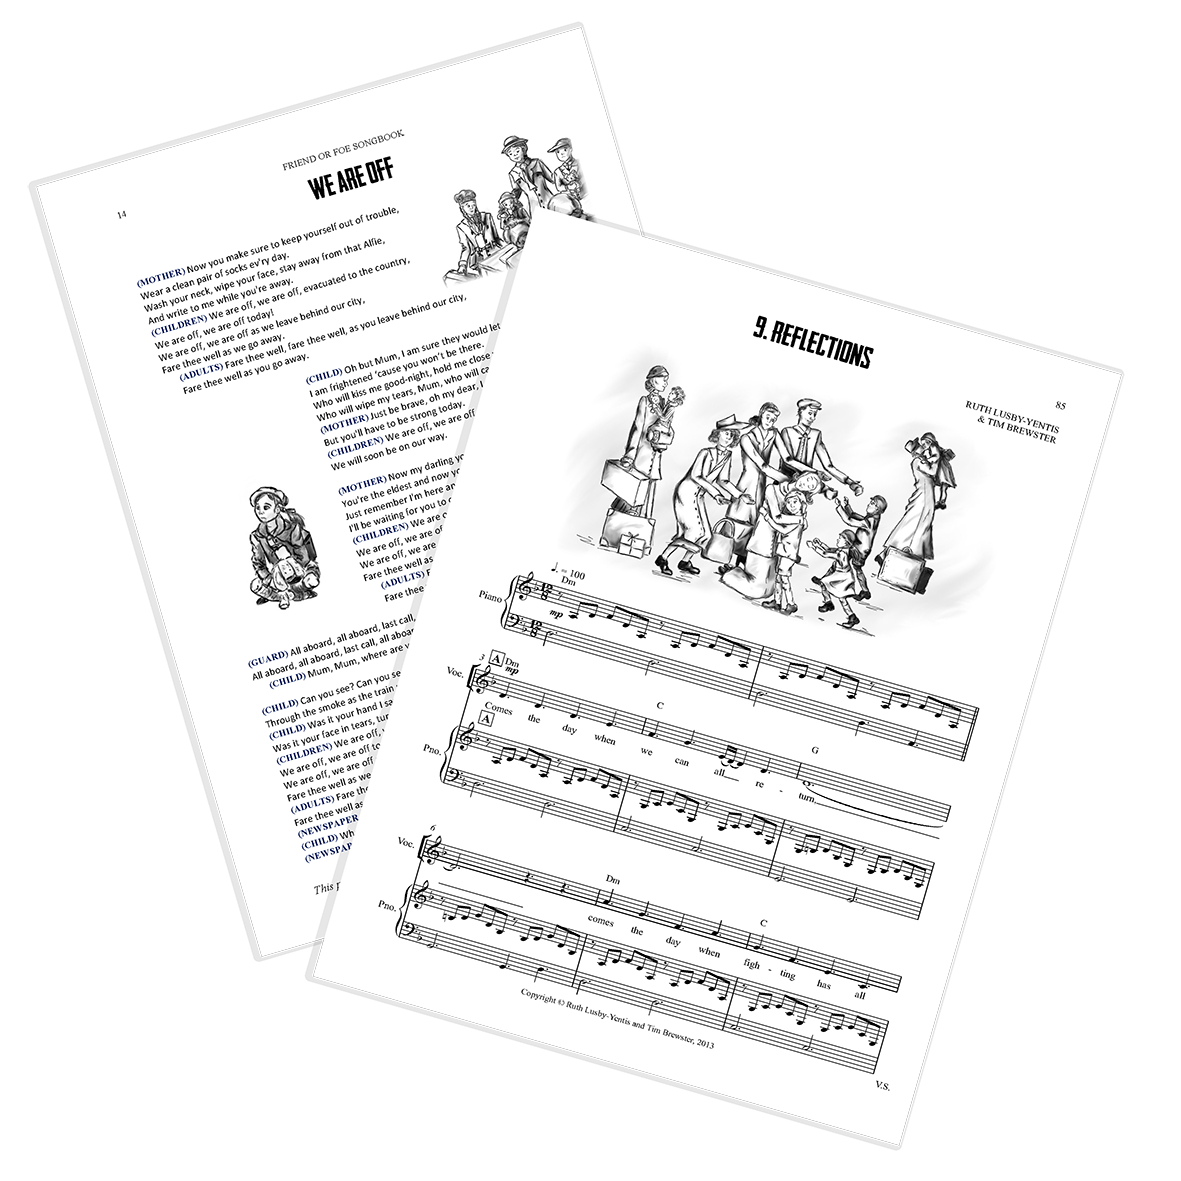 Pages from the songbook